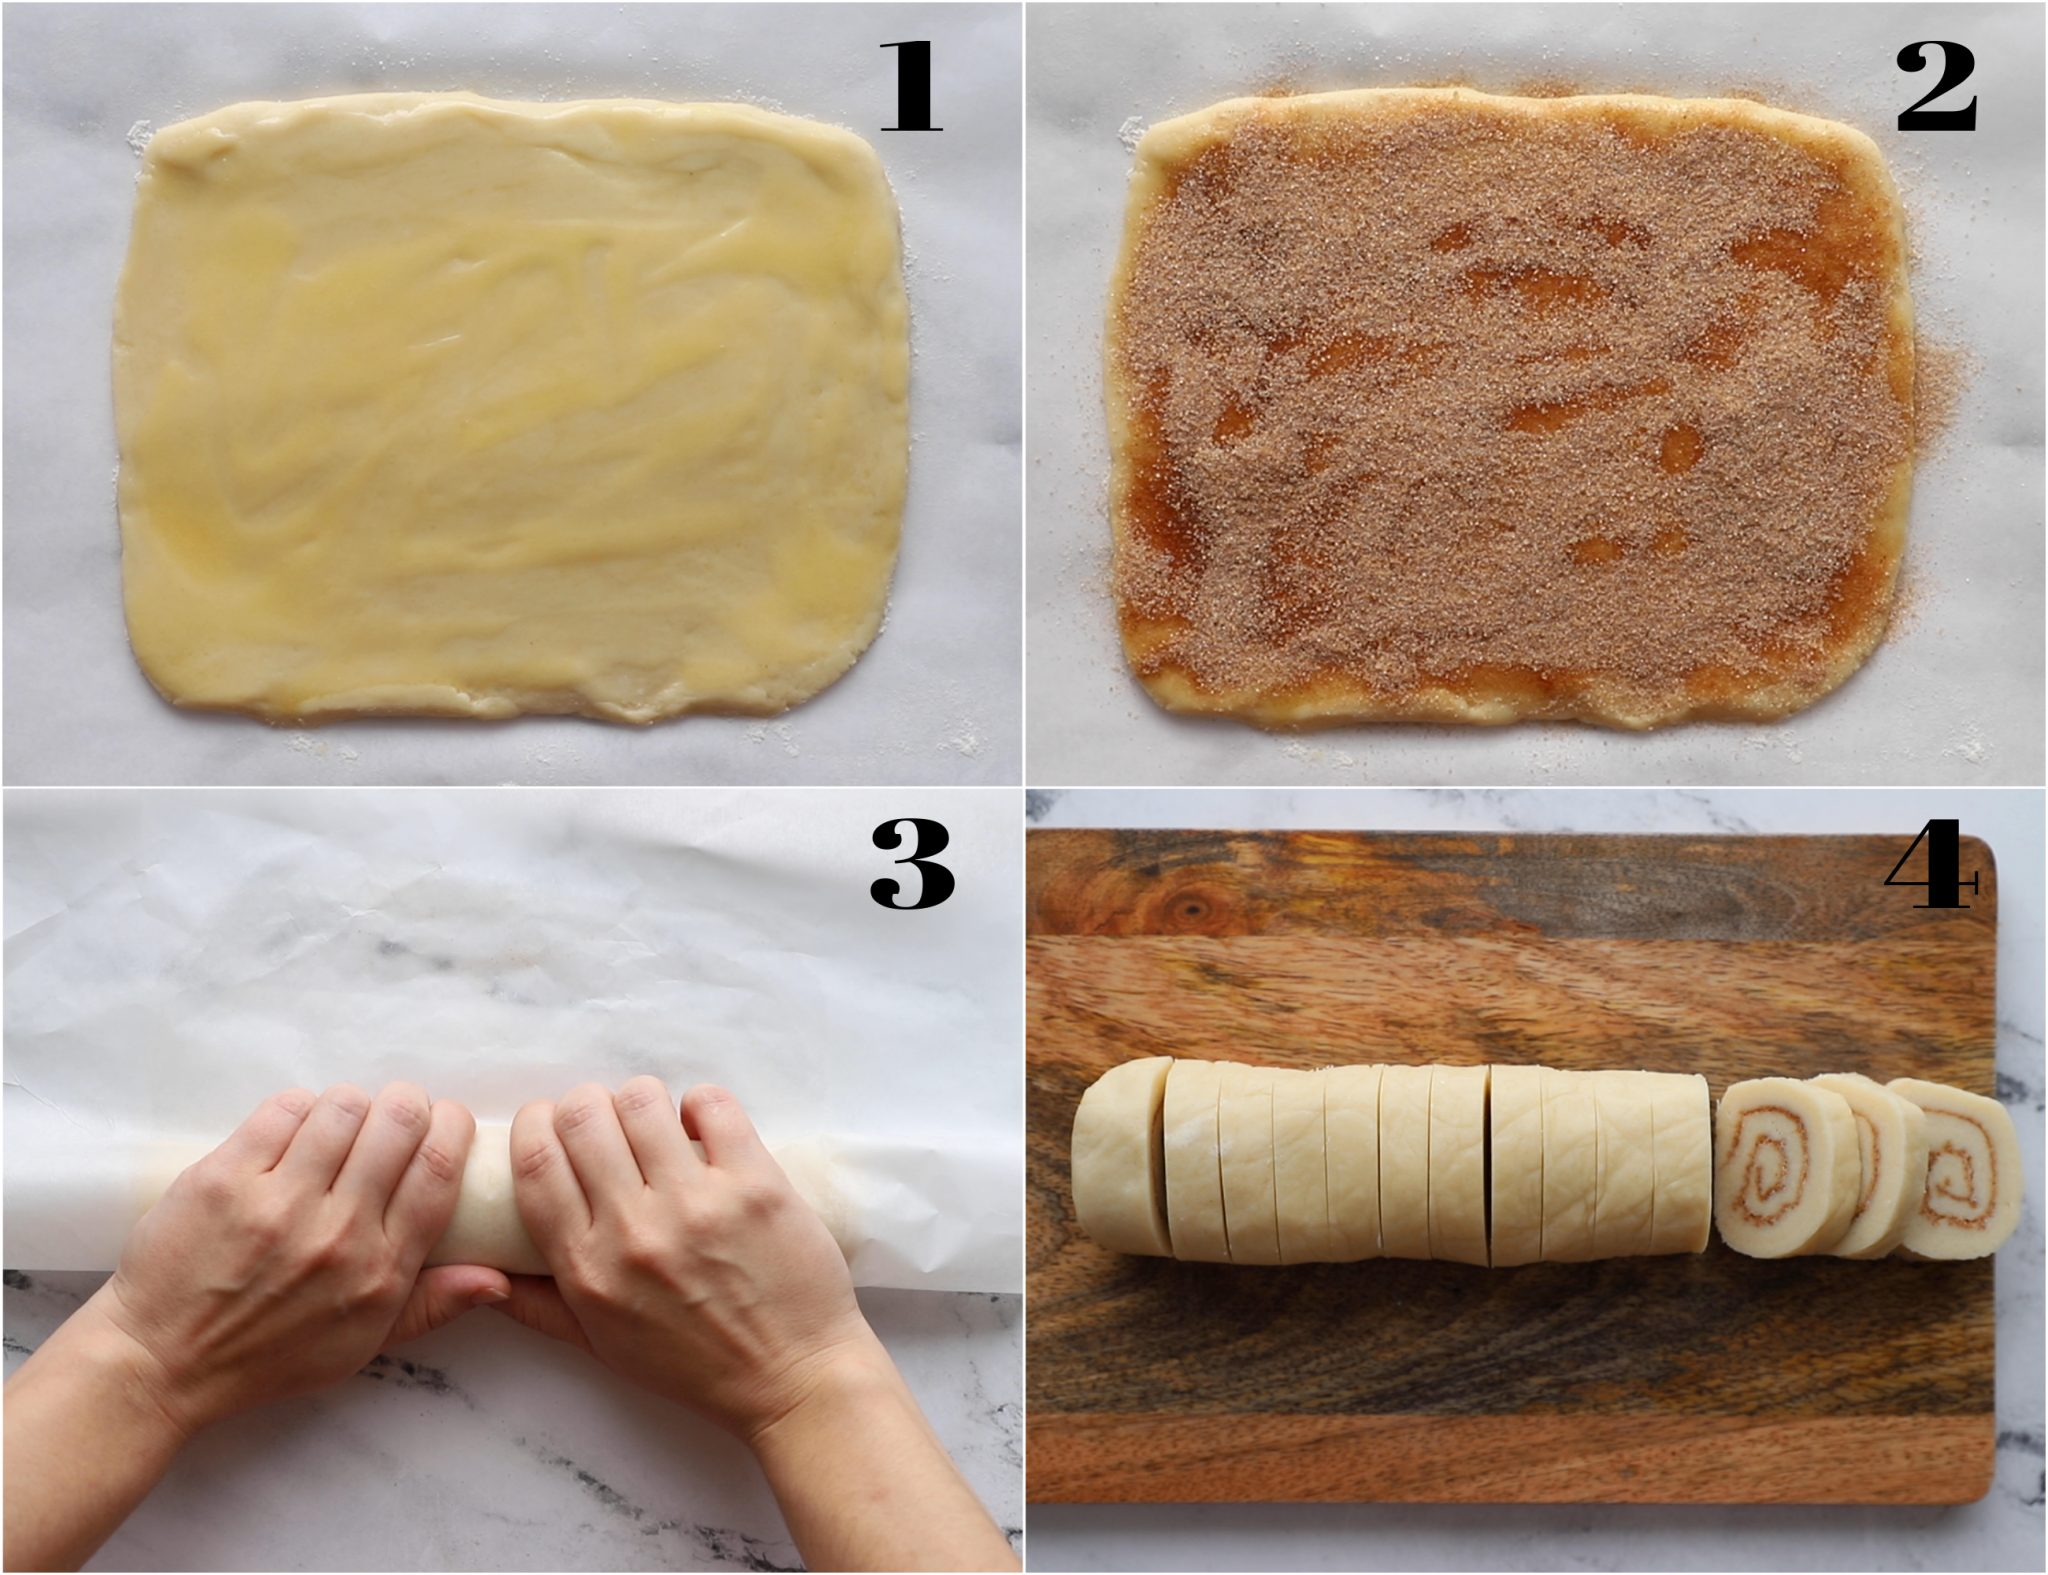 collage of 4 photos: 1) rolled out sugar cookies dough 2)dough topped with butter and cinnamon sugar 3) hands coming in and rolling up the dough 4) cookie dough roll sliced into discs